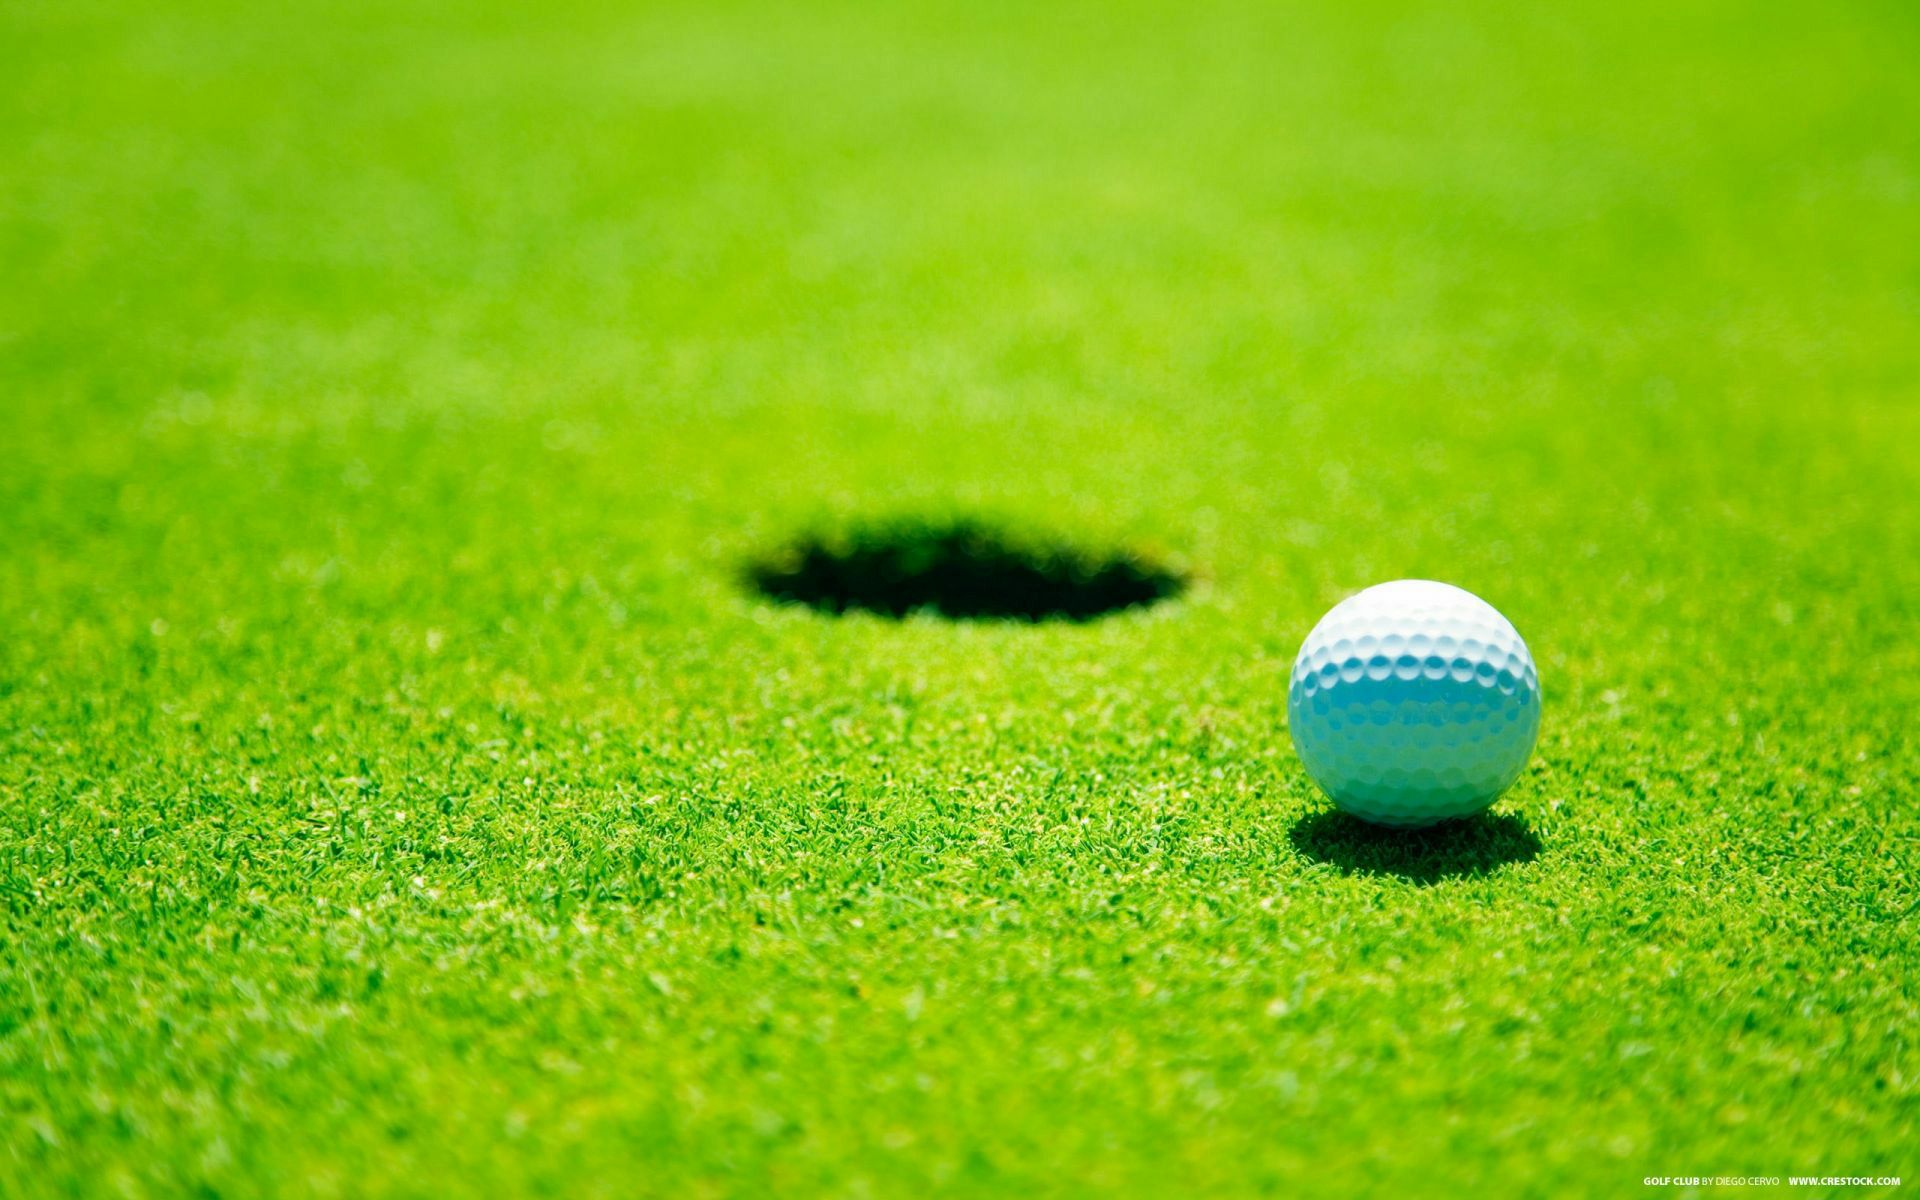 Best Windows 10 Wallpaper Golf Pictures Golf Ball Golf Courses